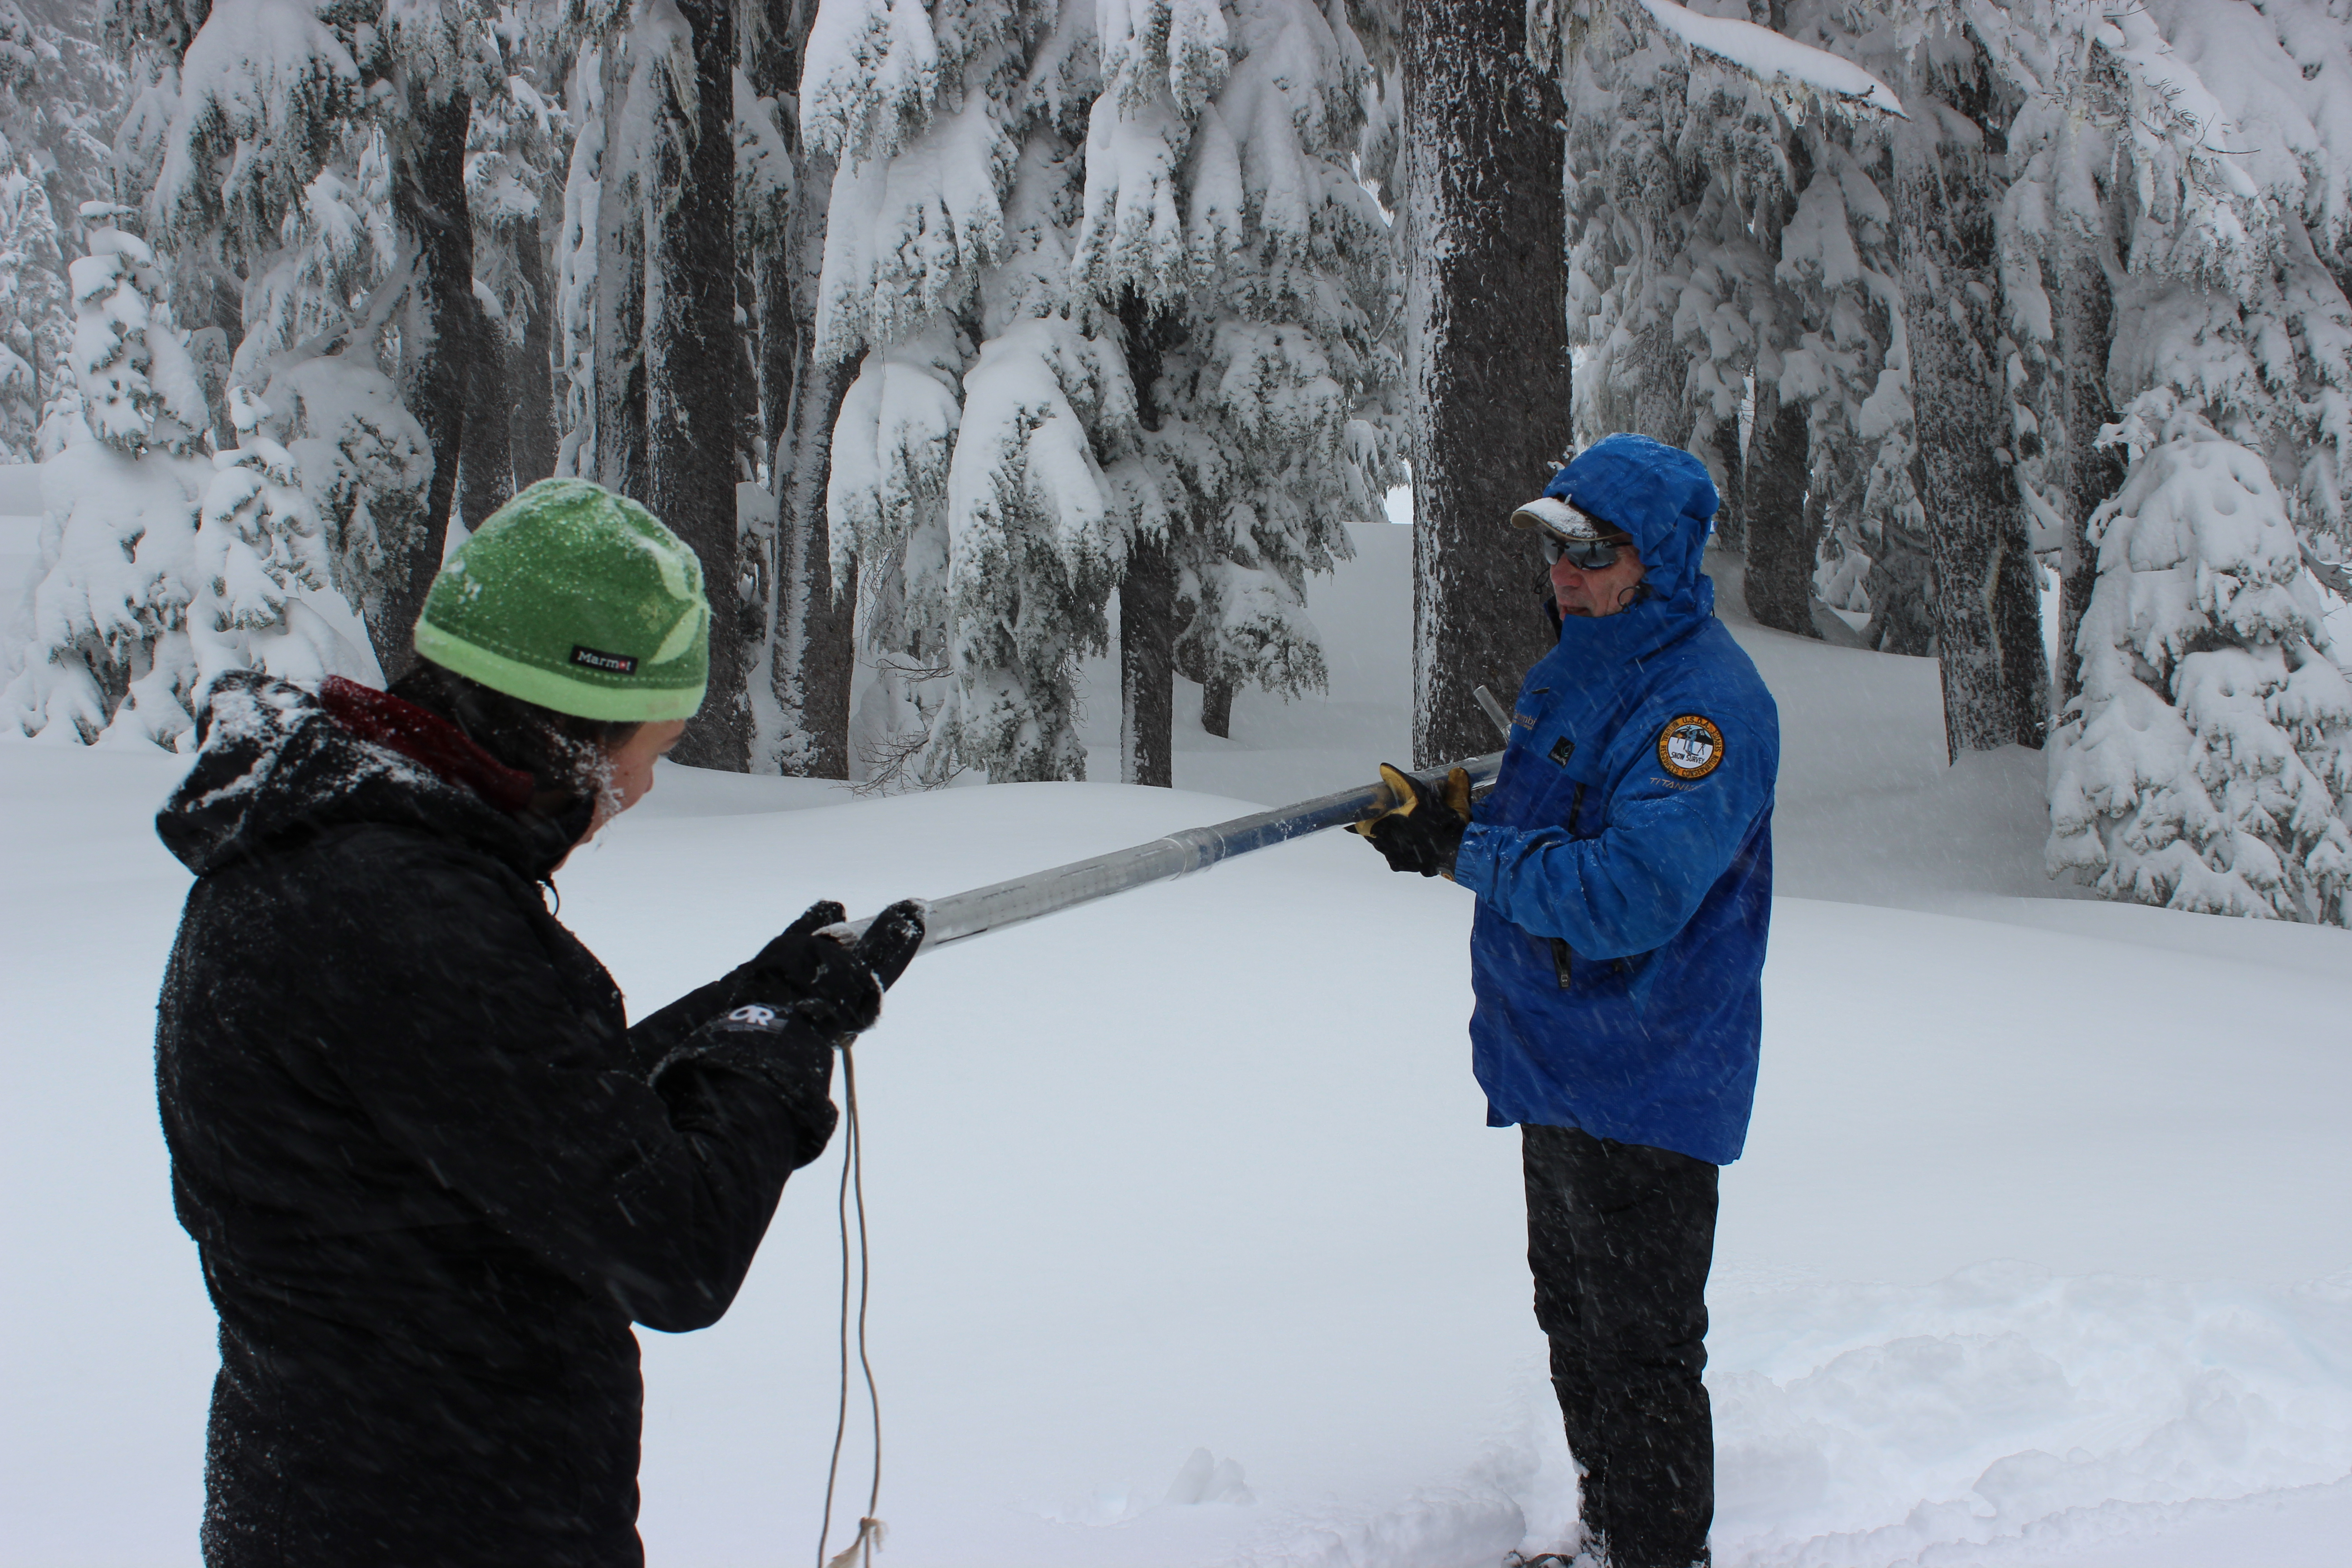 NRCS snow surveyors collect data that helps farmers, ranchers, water managers, hydroelectric compani